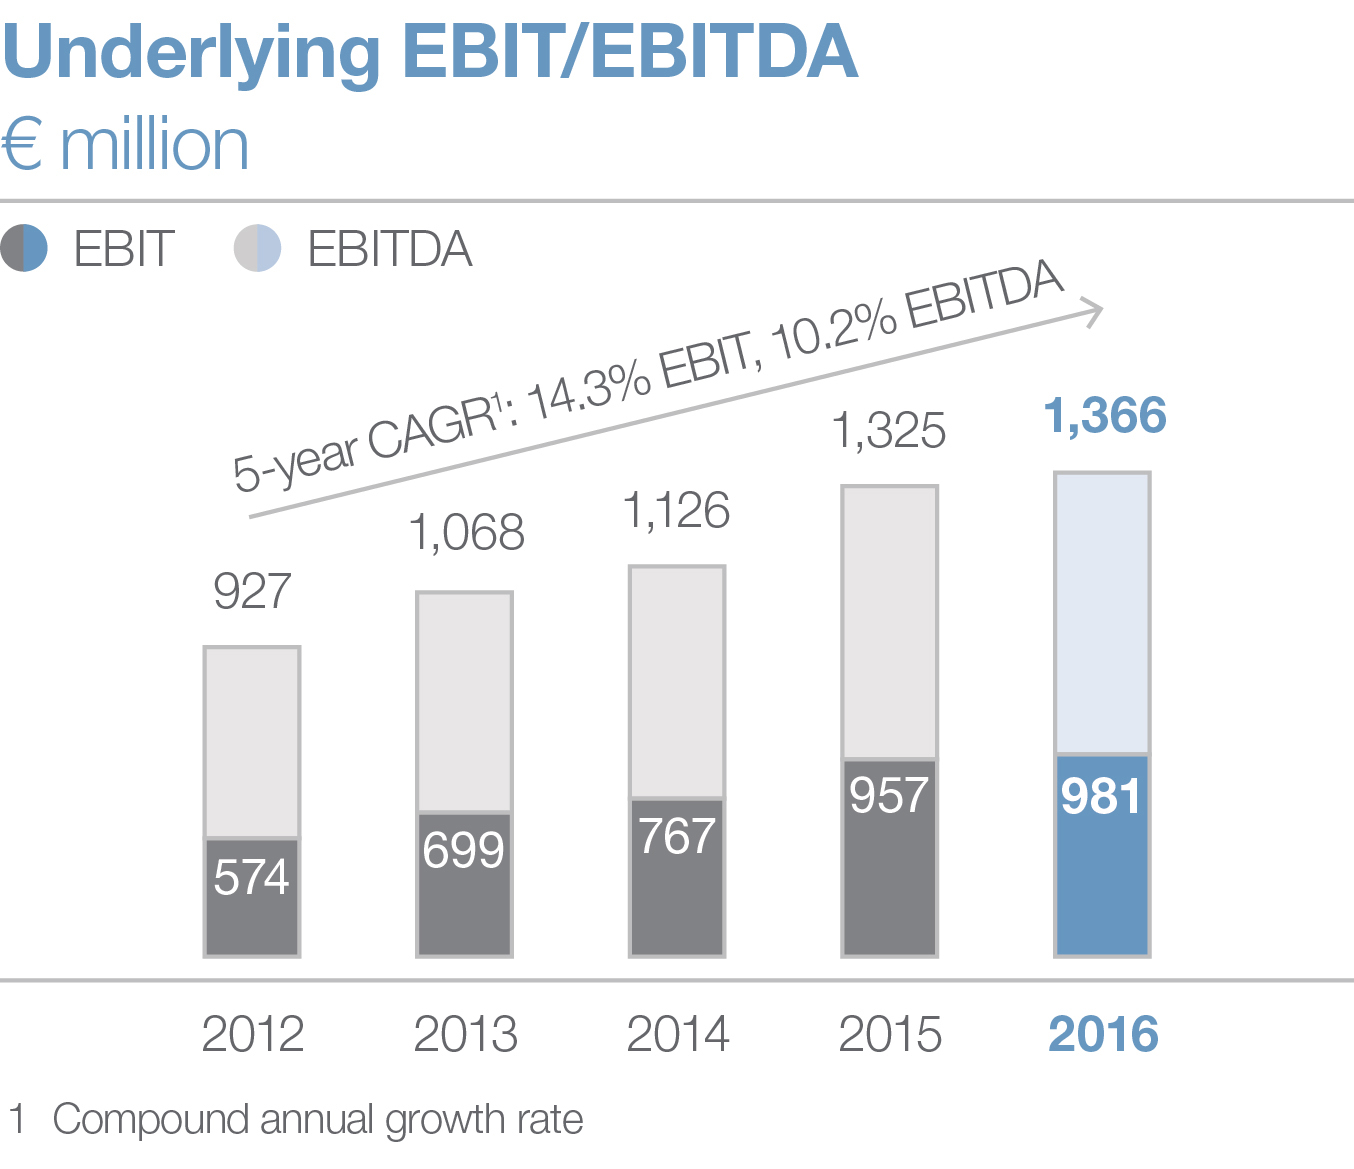 Underlying EBIT/EBITDA